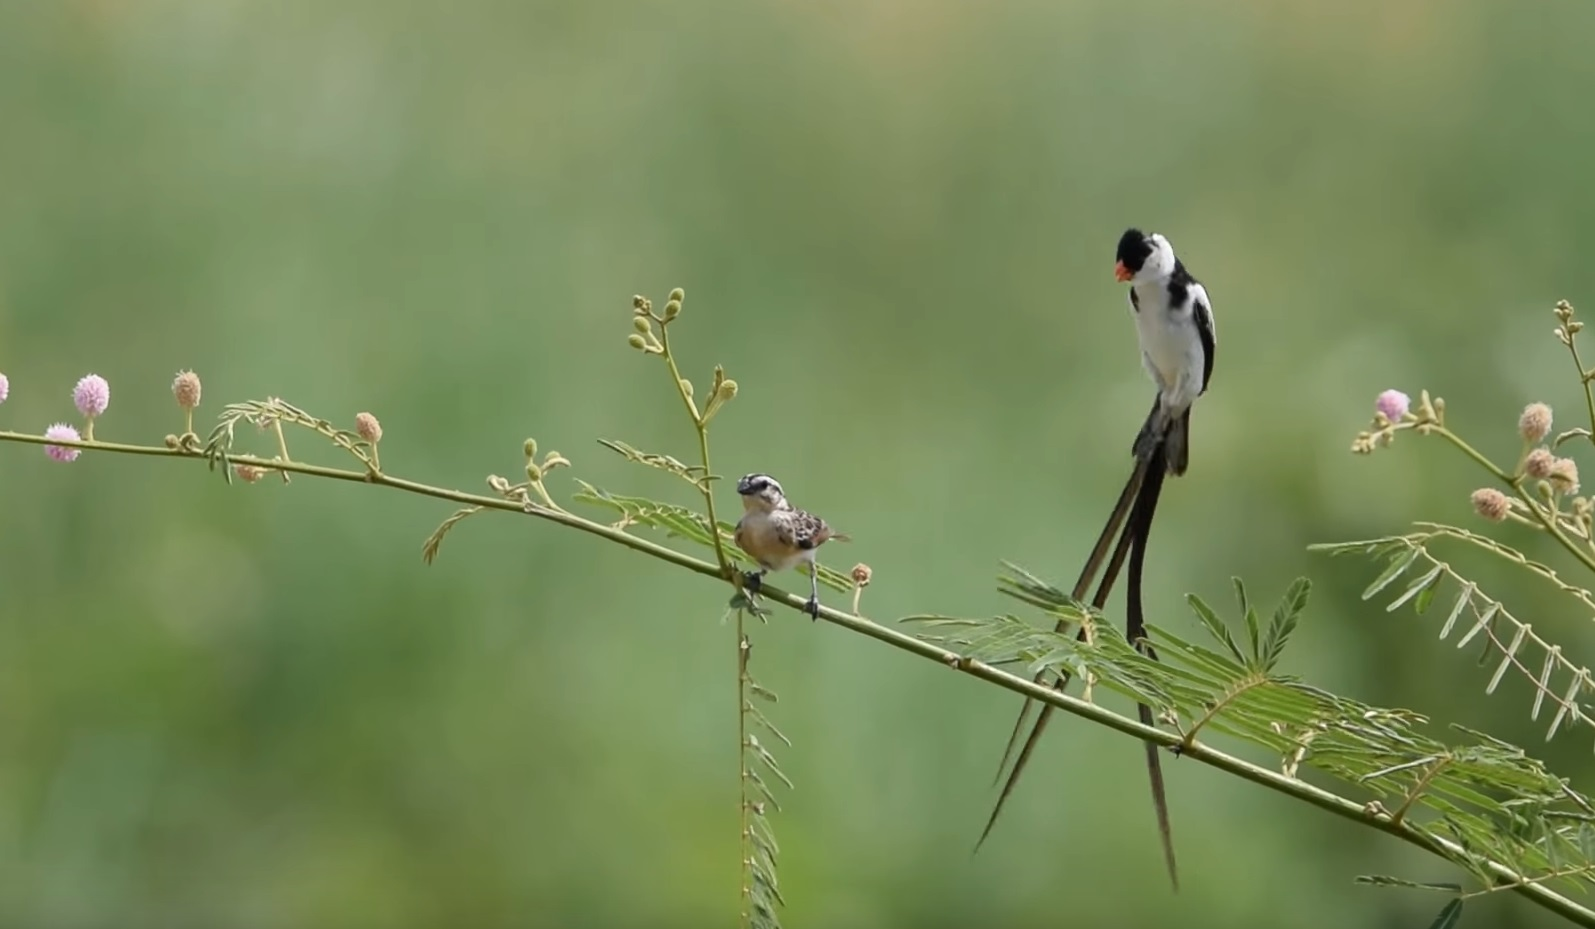 Pin-tailed Whydah Courtship Dance